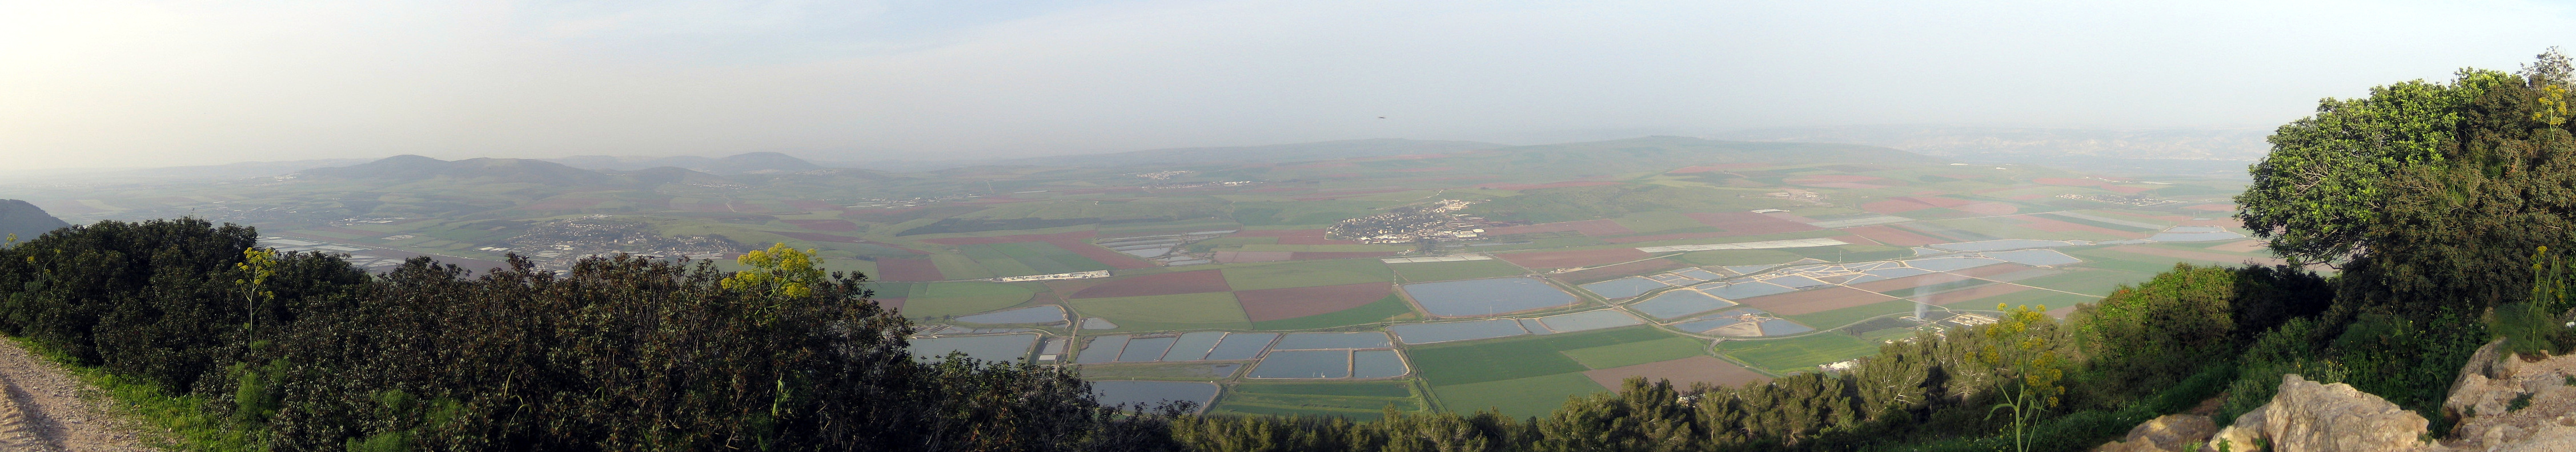 http://commons.wikimedia.org/wiki/File:Jezreel_Valley_panorama.jpg